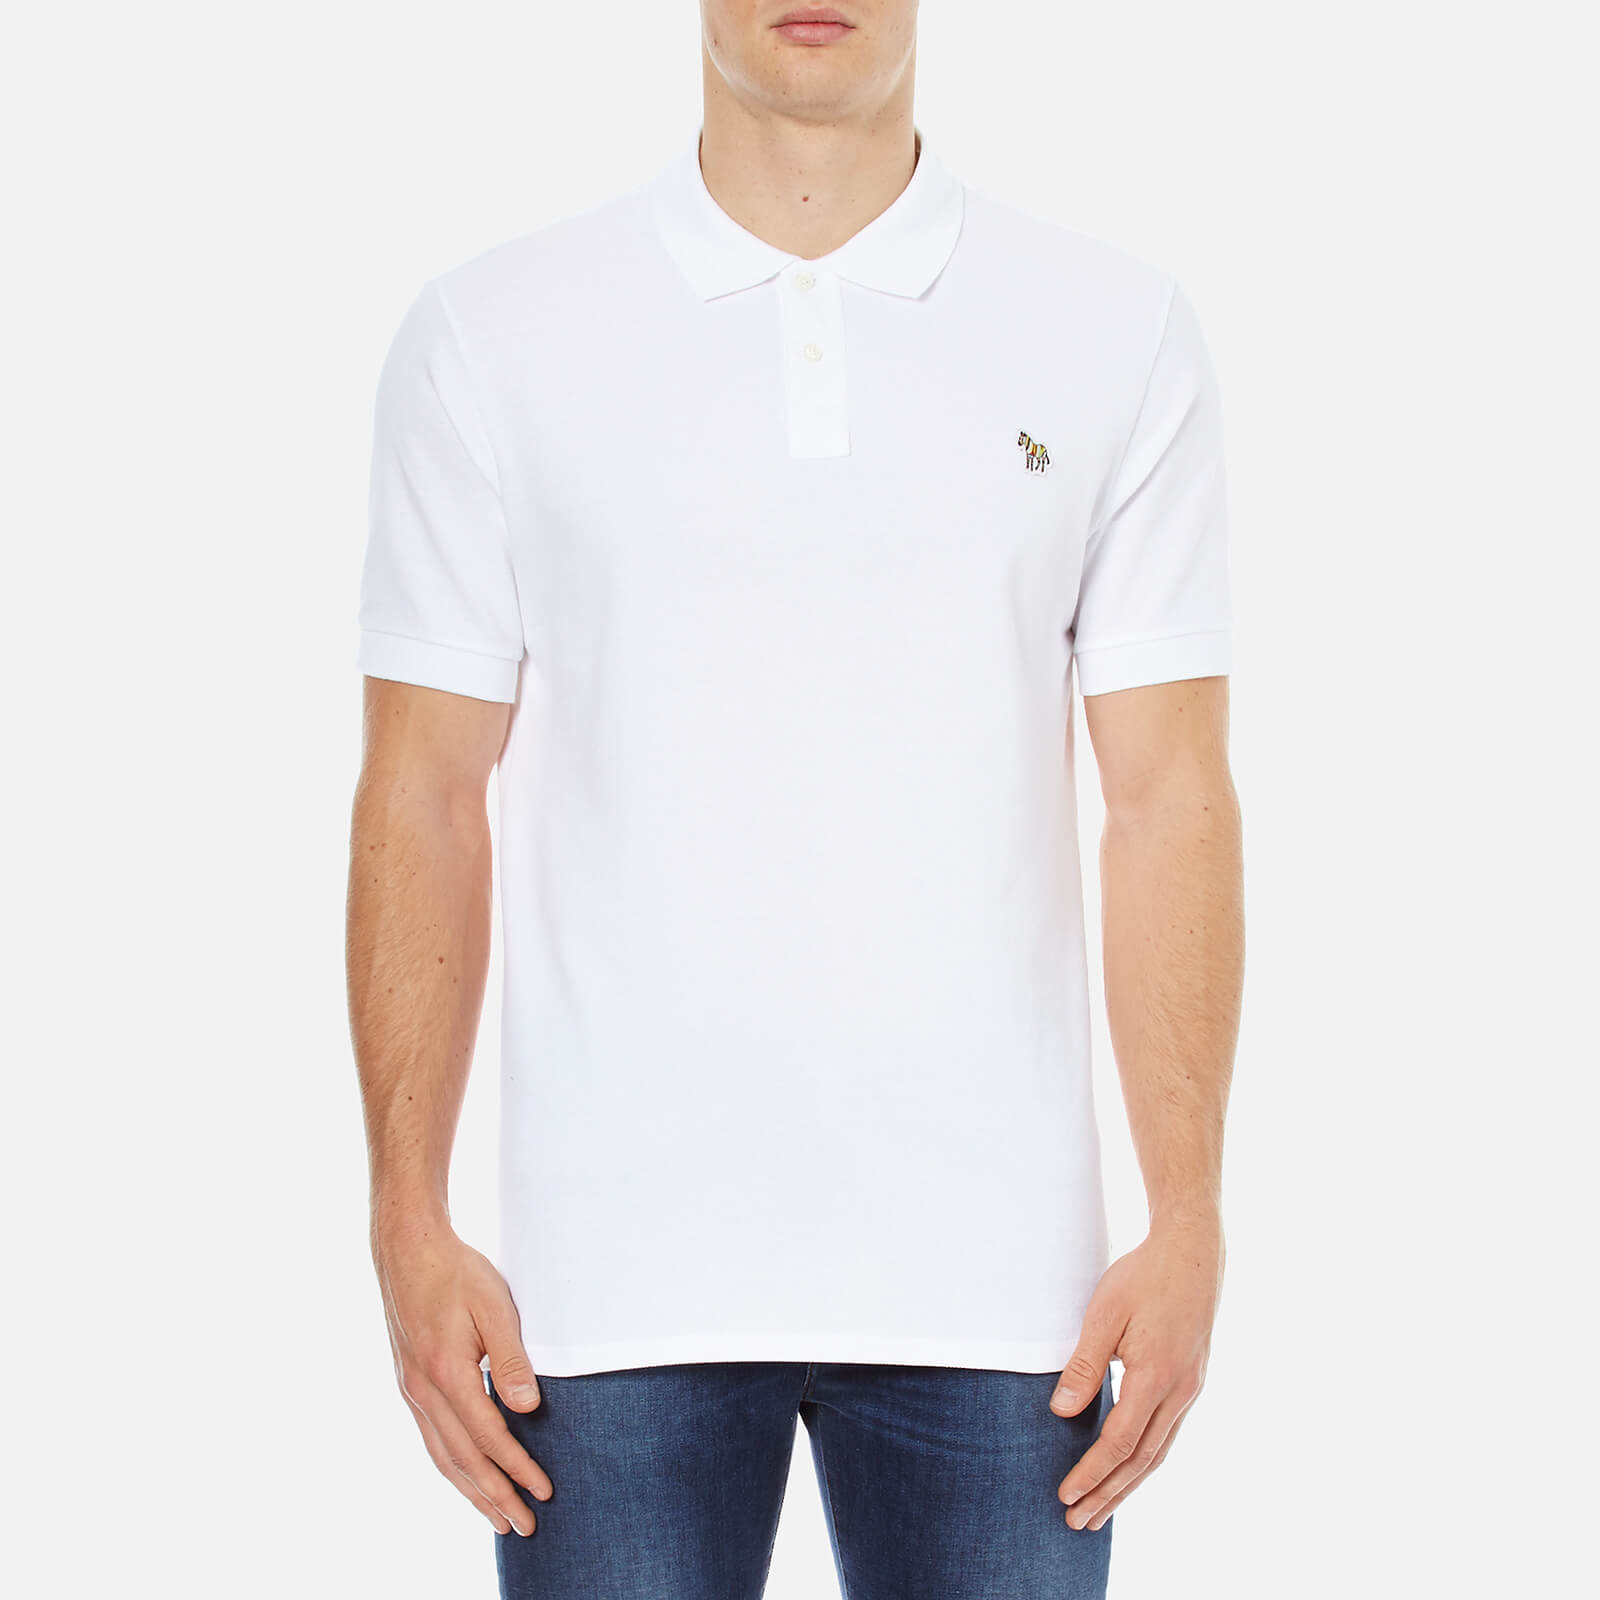 cc208afac PS Paul Smith Men s Basic Pique Zebra Polo Shirt - White - Free UK Delivery  over £50